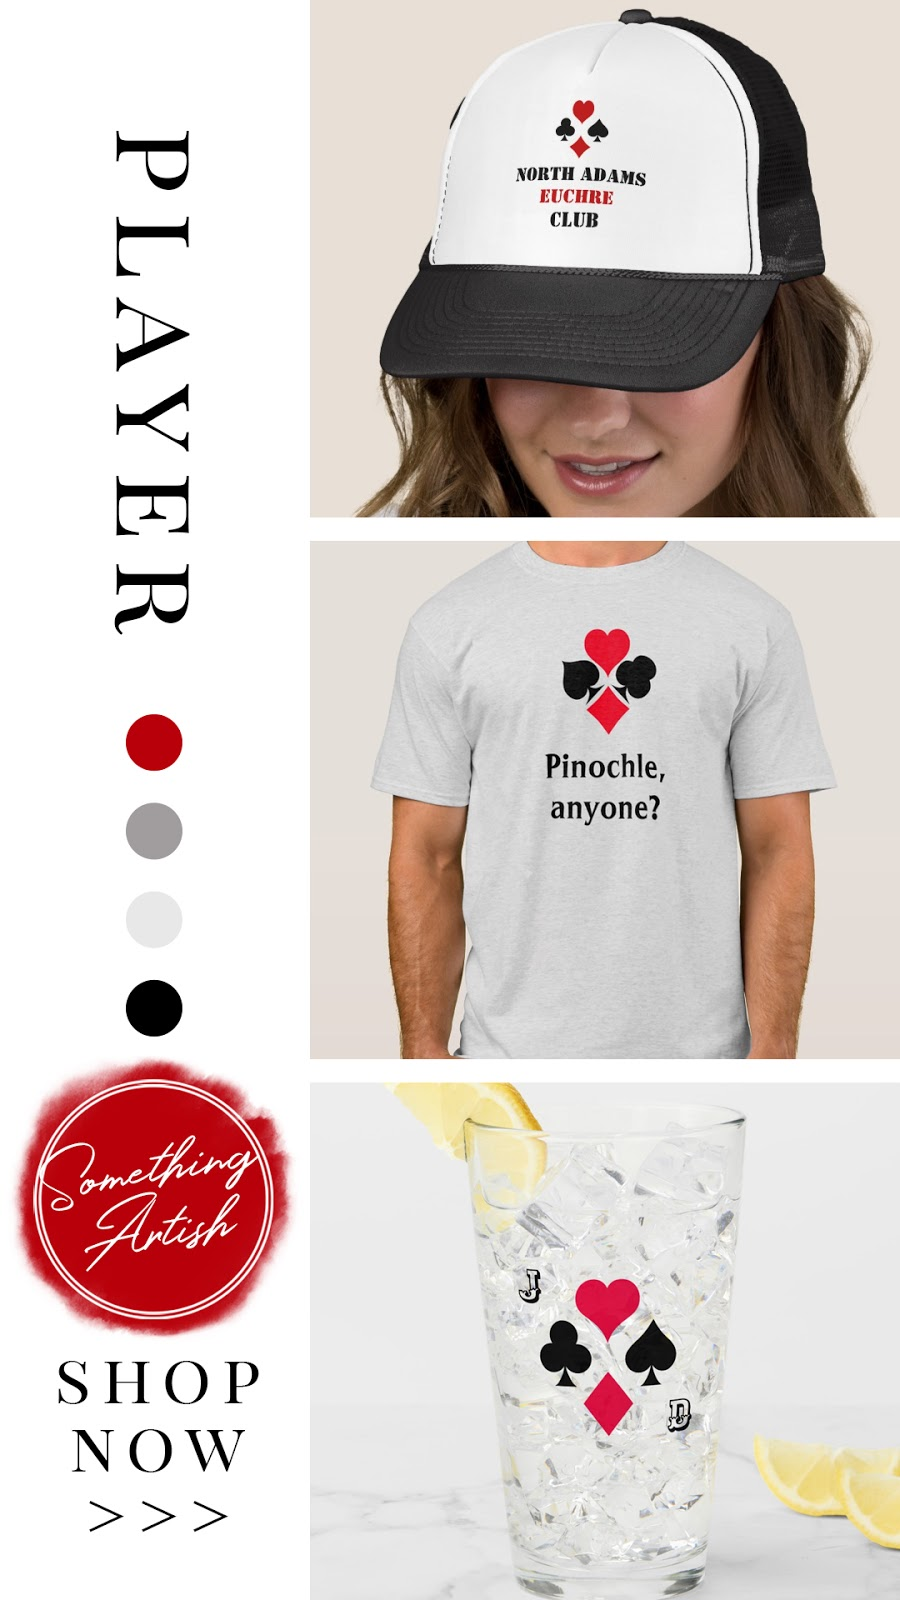 Personalized and monogrammed trucker hat, tee-shirt, and drinking glass. Custom gifts and apparel with playing card suit symbols; hear, spade, club, and diamond. In a red black and gray color palette.